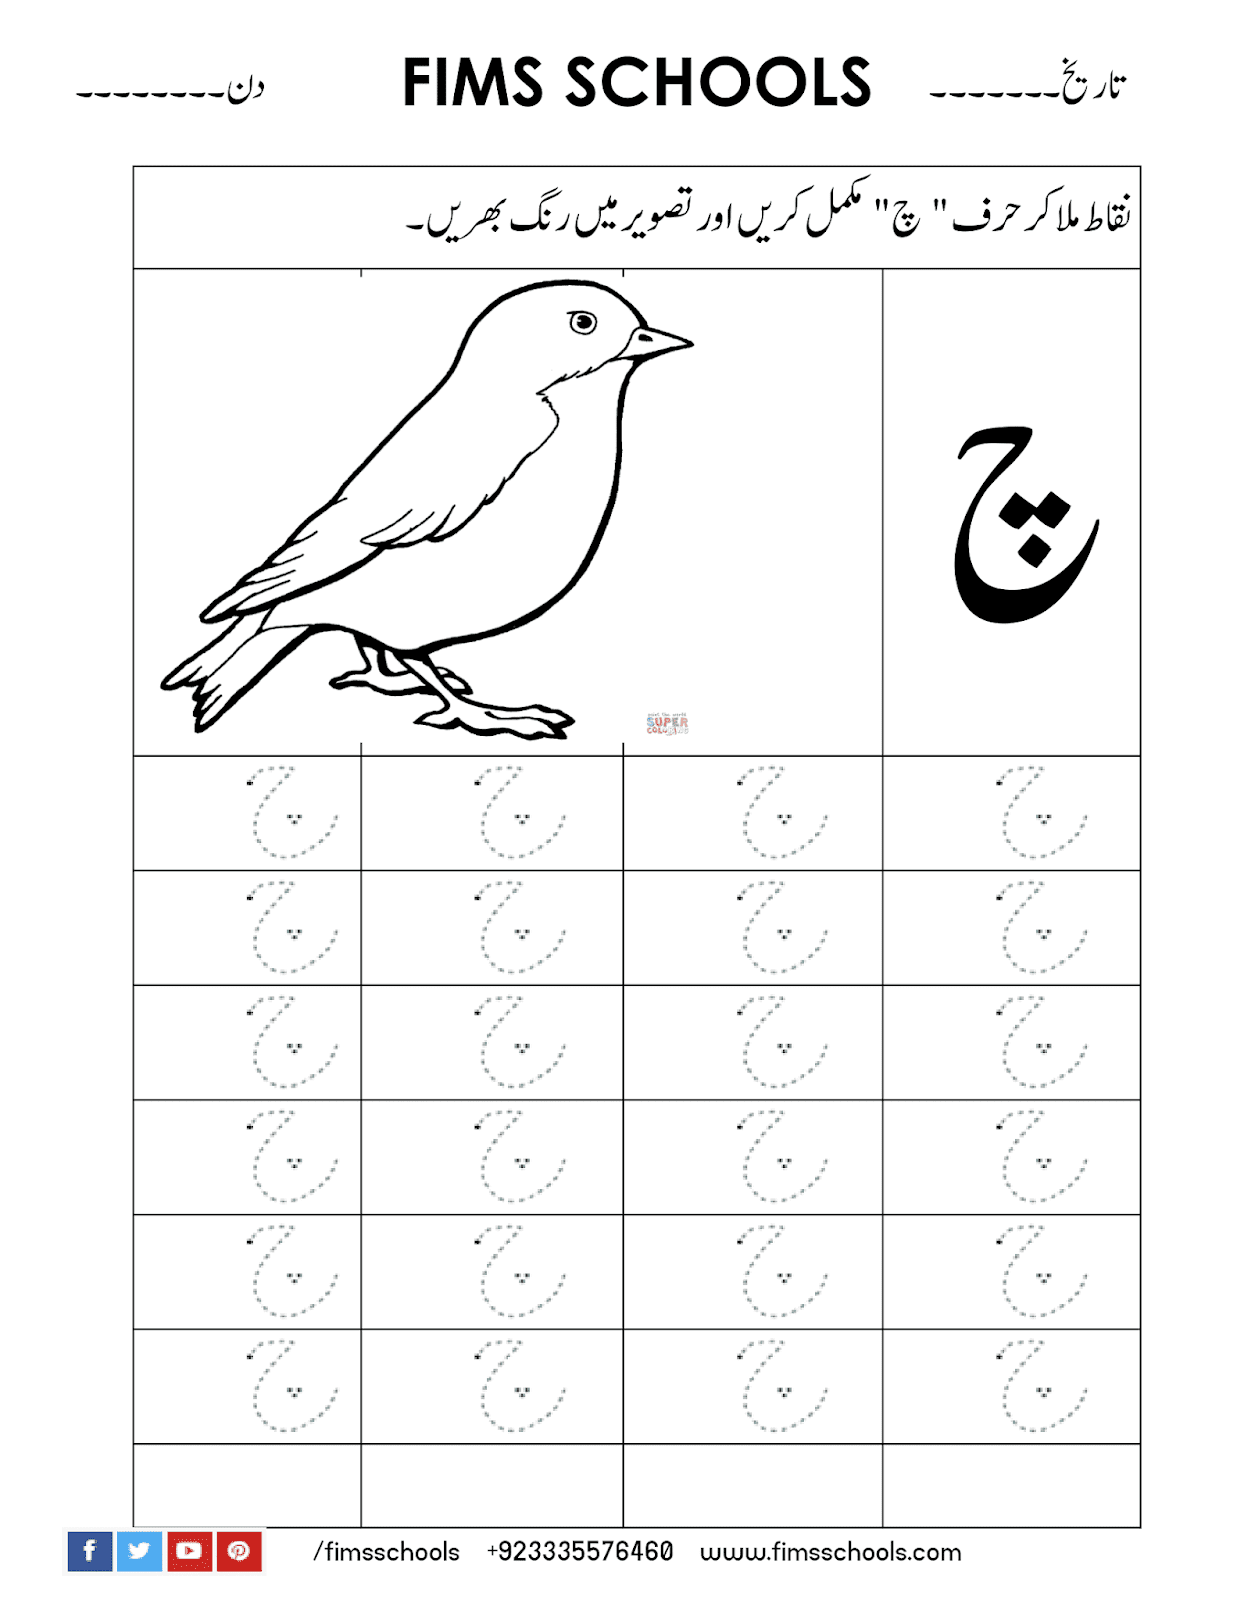 Urdu Alphabets Tracing Worksheets Printable Page 2